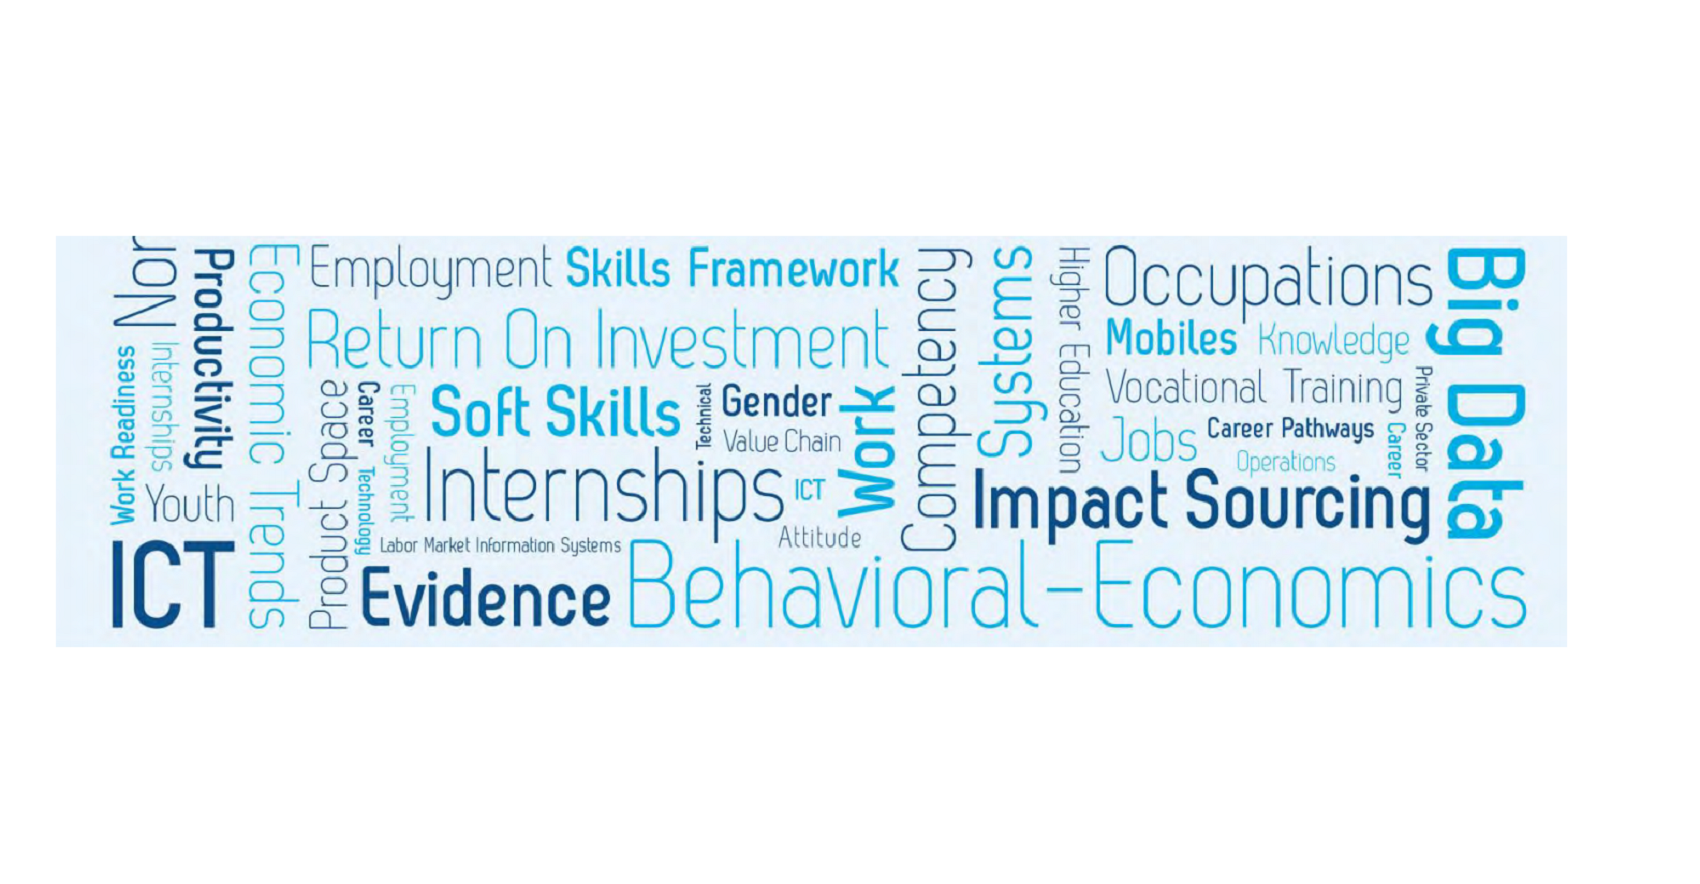 Workforce Connections word cloud image